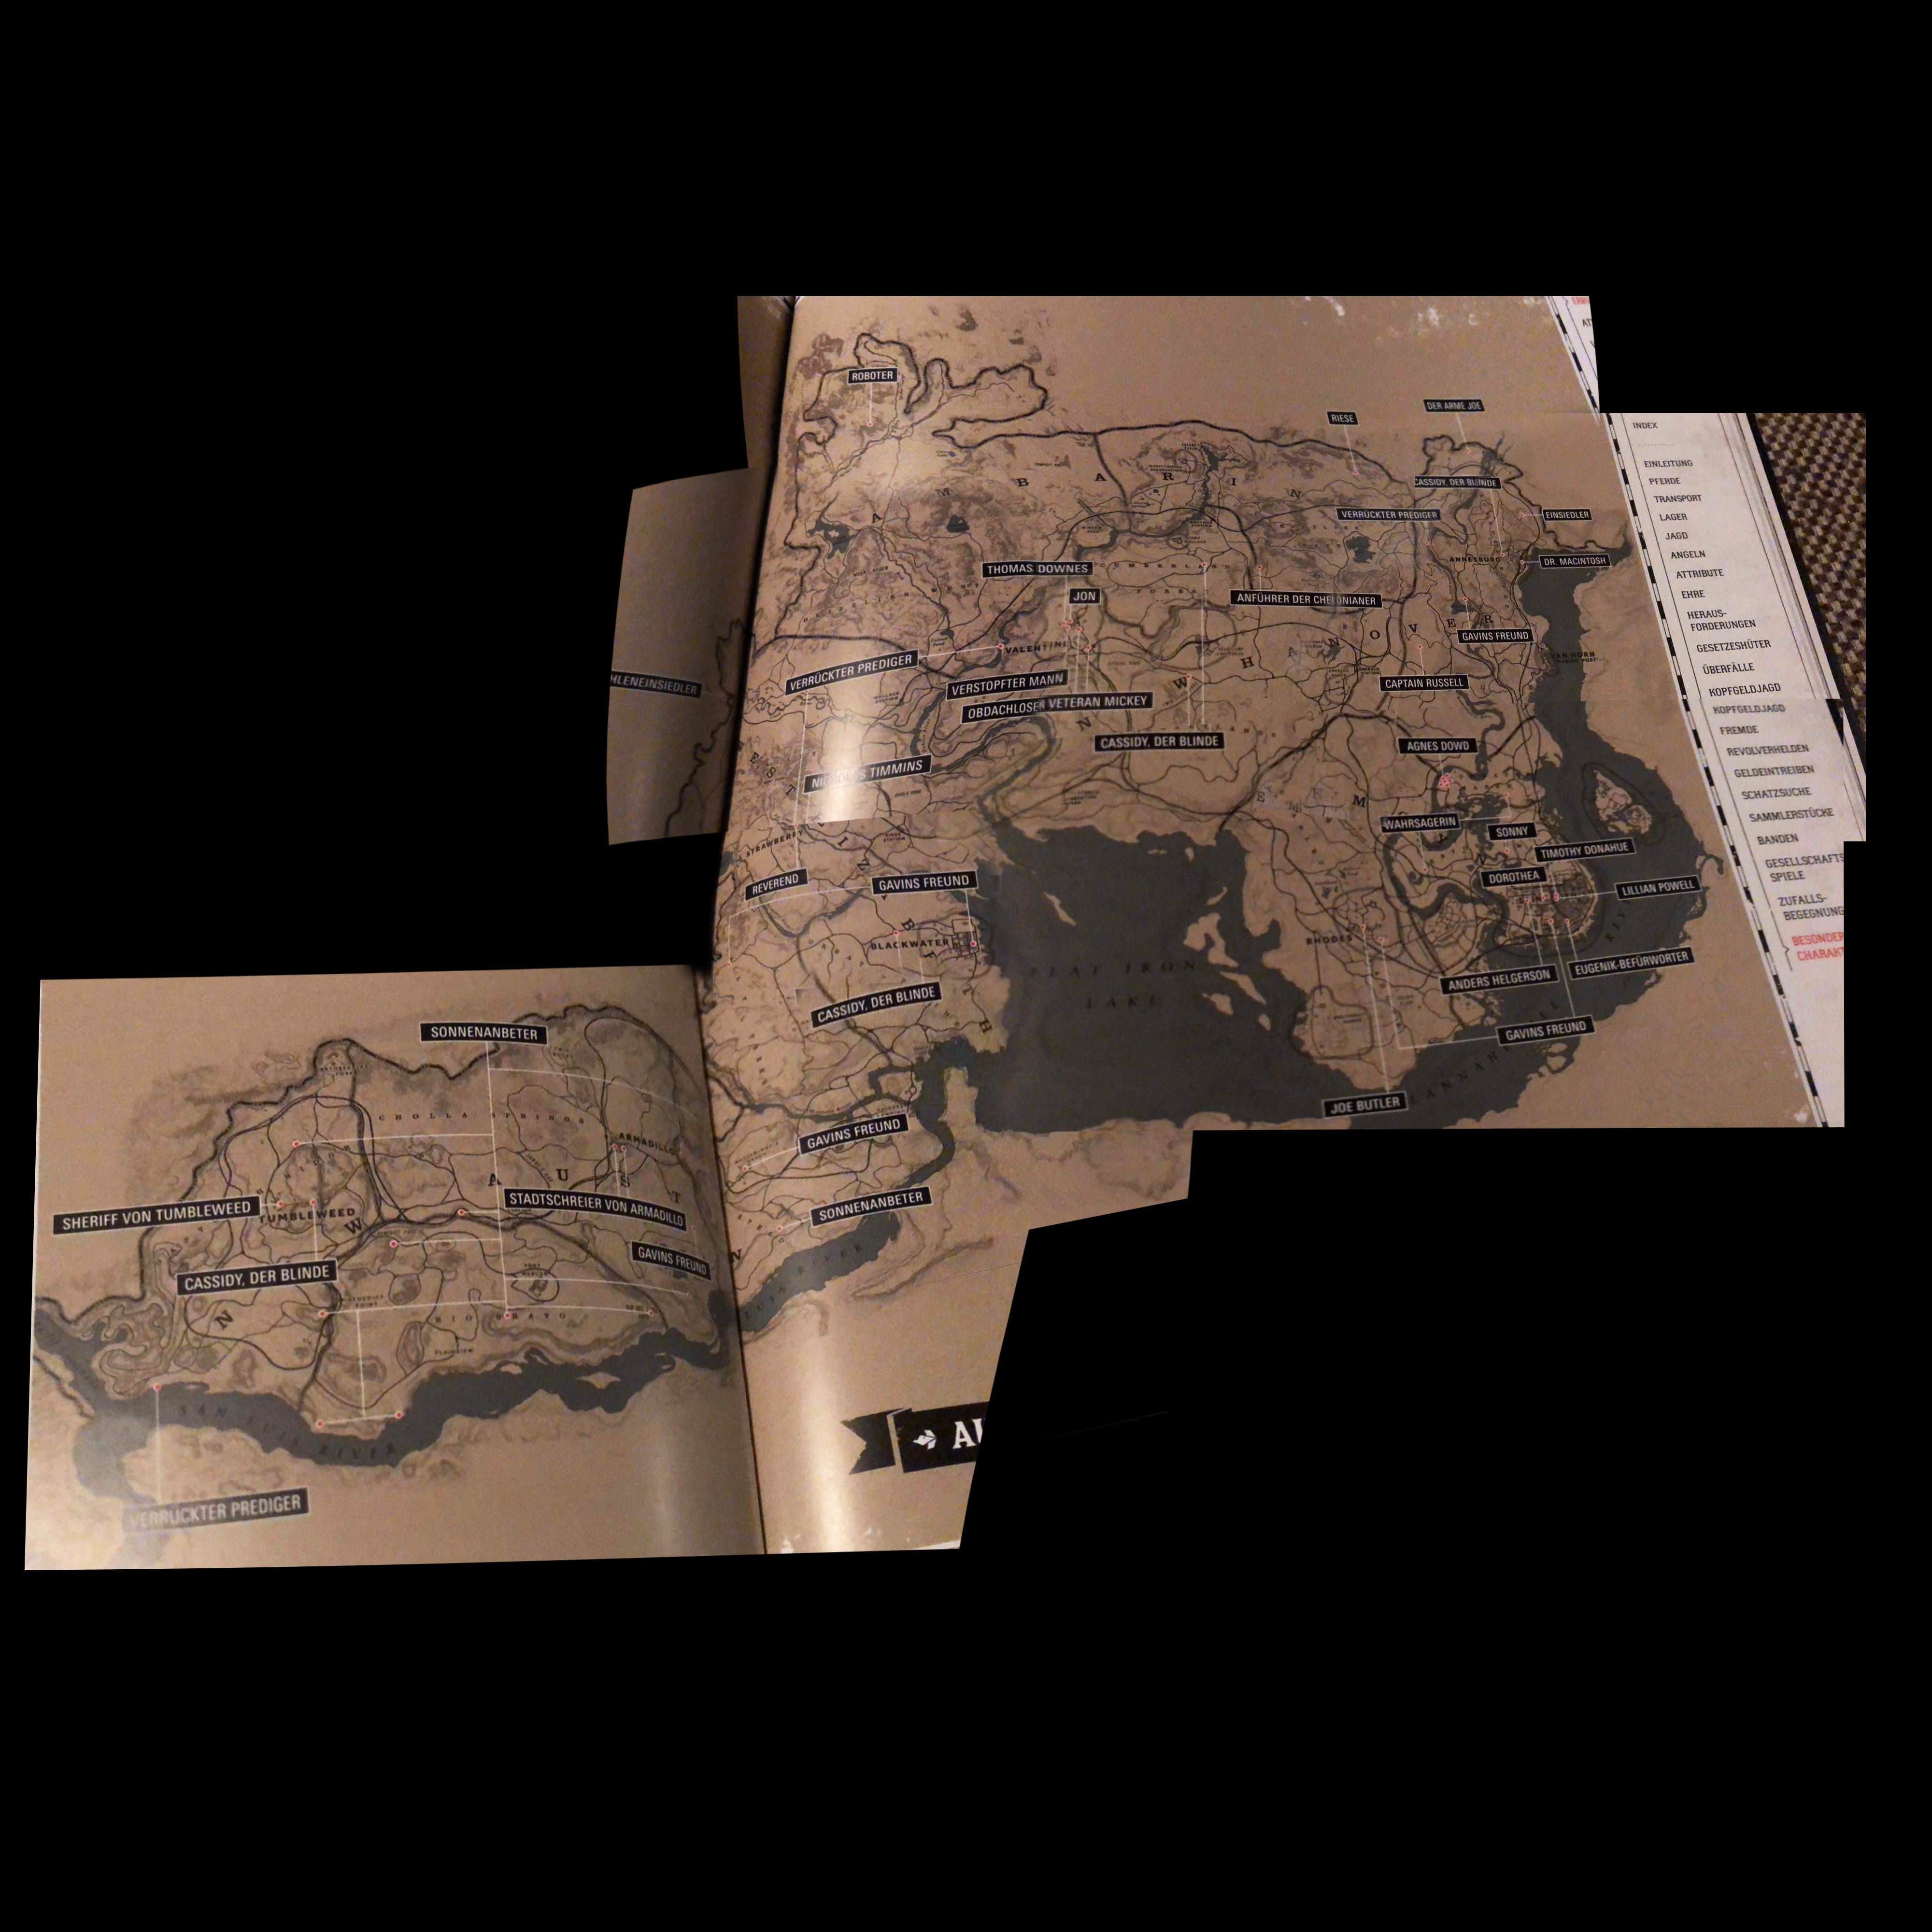 Red Dead 2 World Map.New Red Dead Redemption 2 Leaks Reveals The Full Map Of The Game